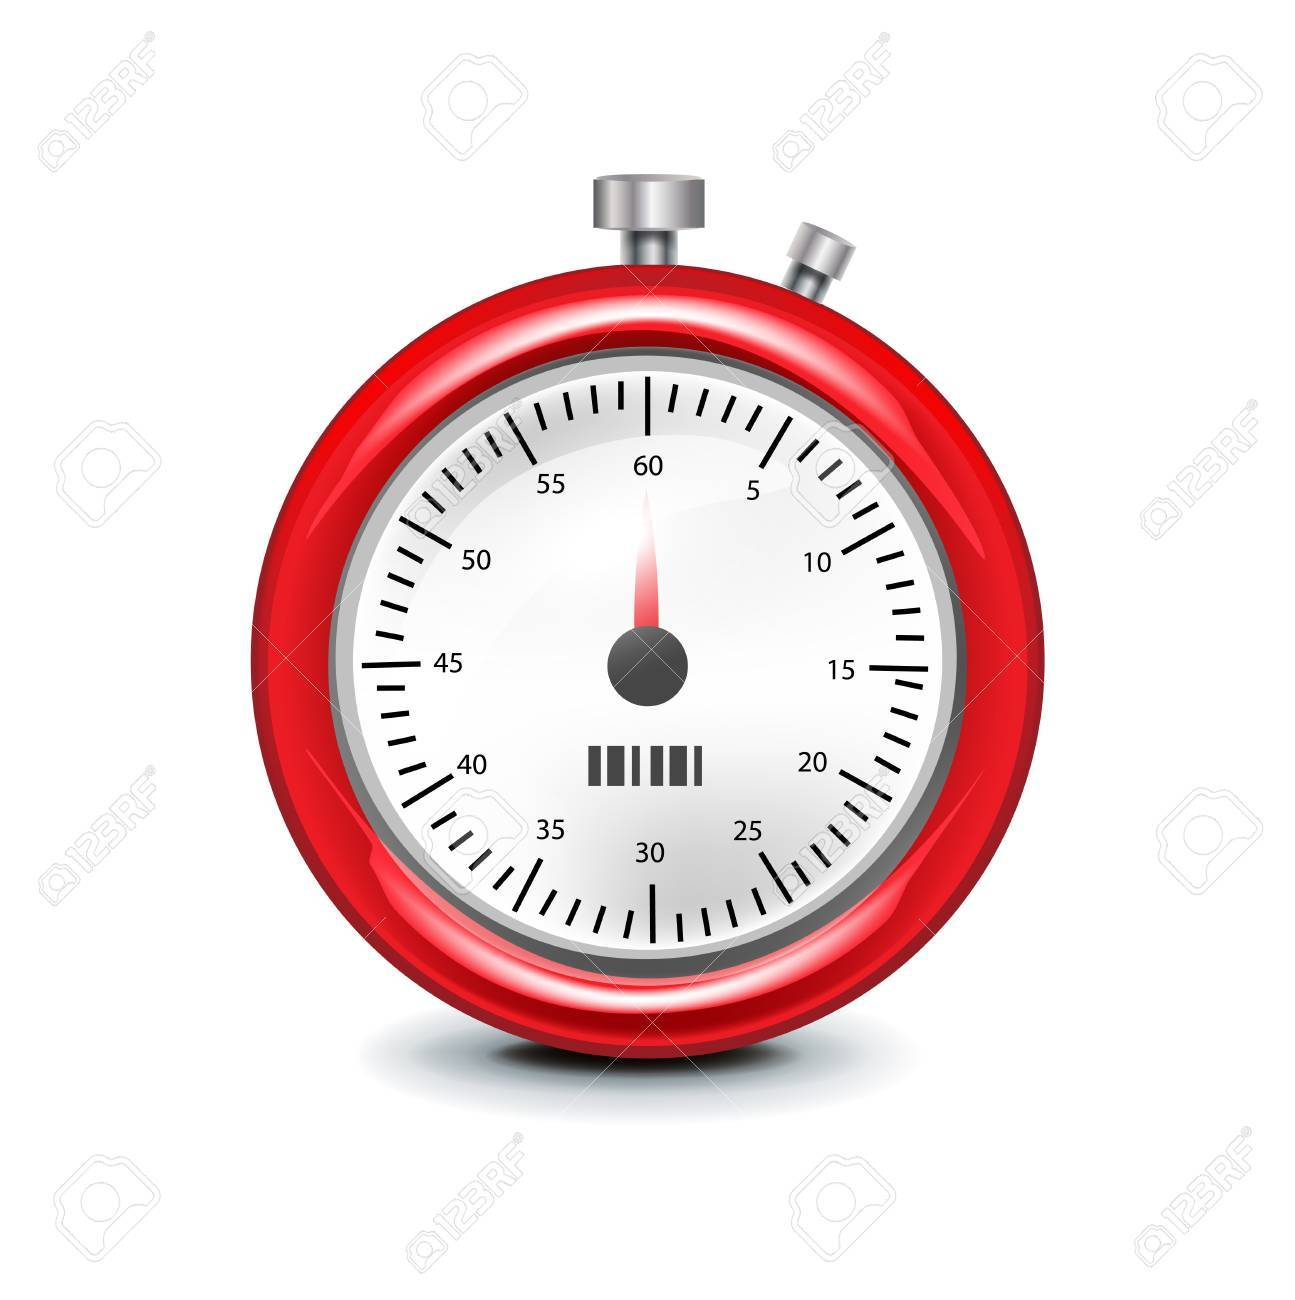 scale/ meter device isolated on white background Stock Vector - 20204033